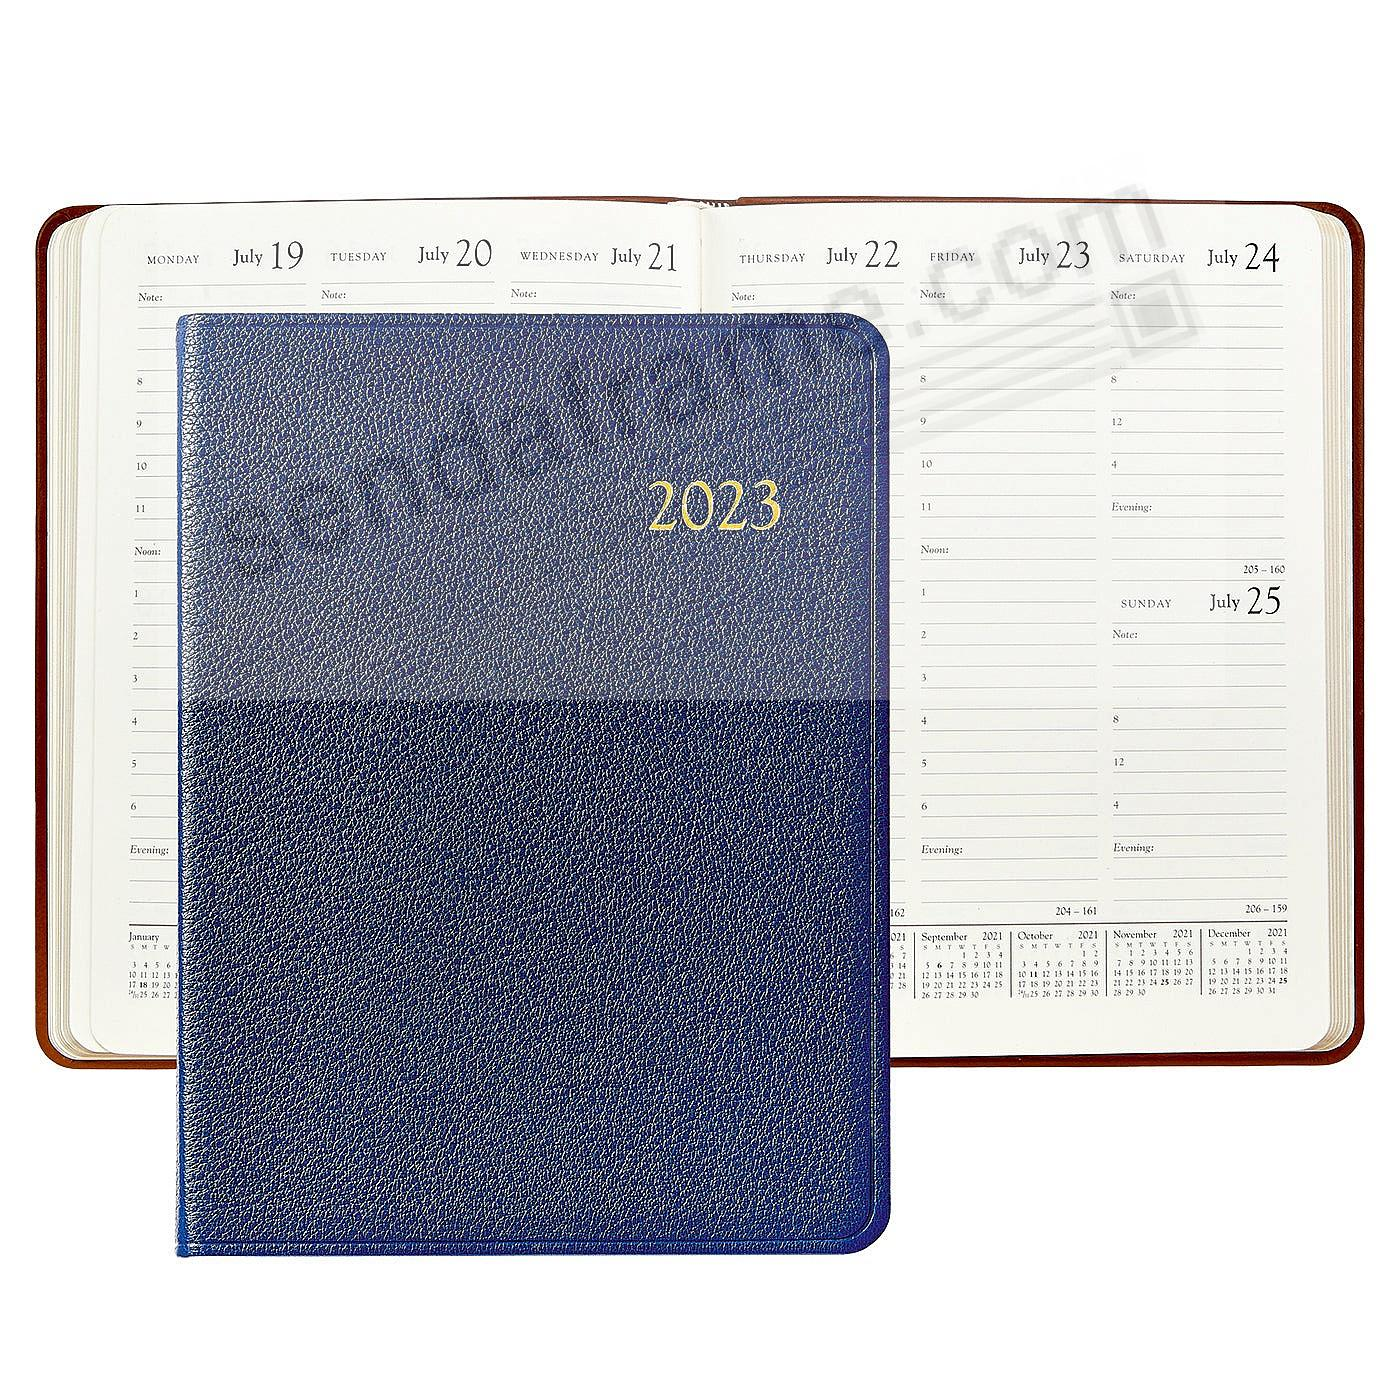 2018 INDIGO-BLUE Goatskin Leather 9in Desk Diary by Graphic Image™